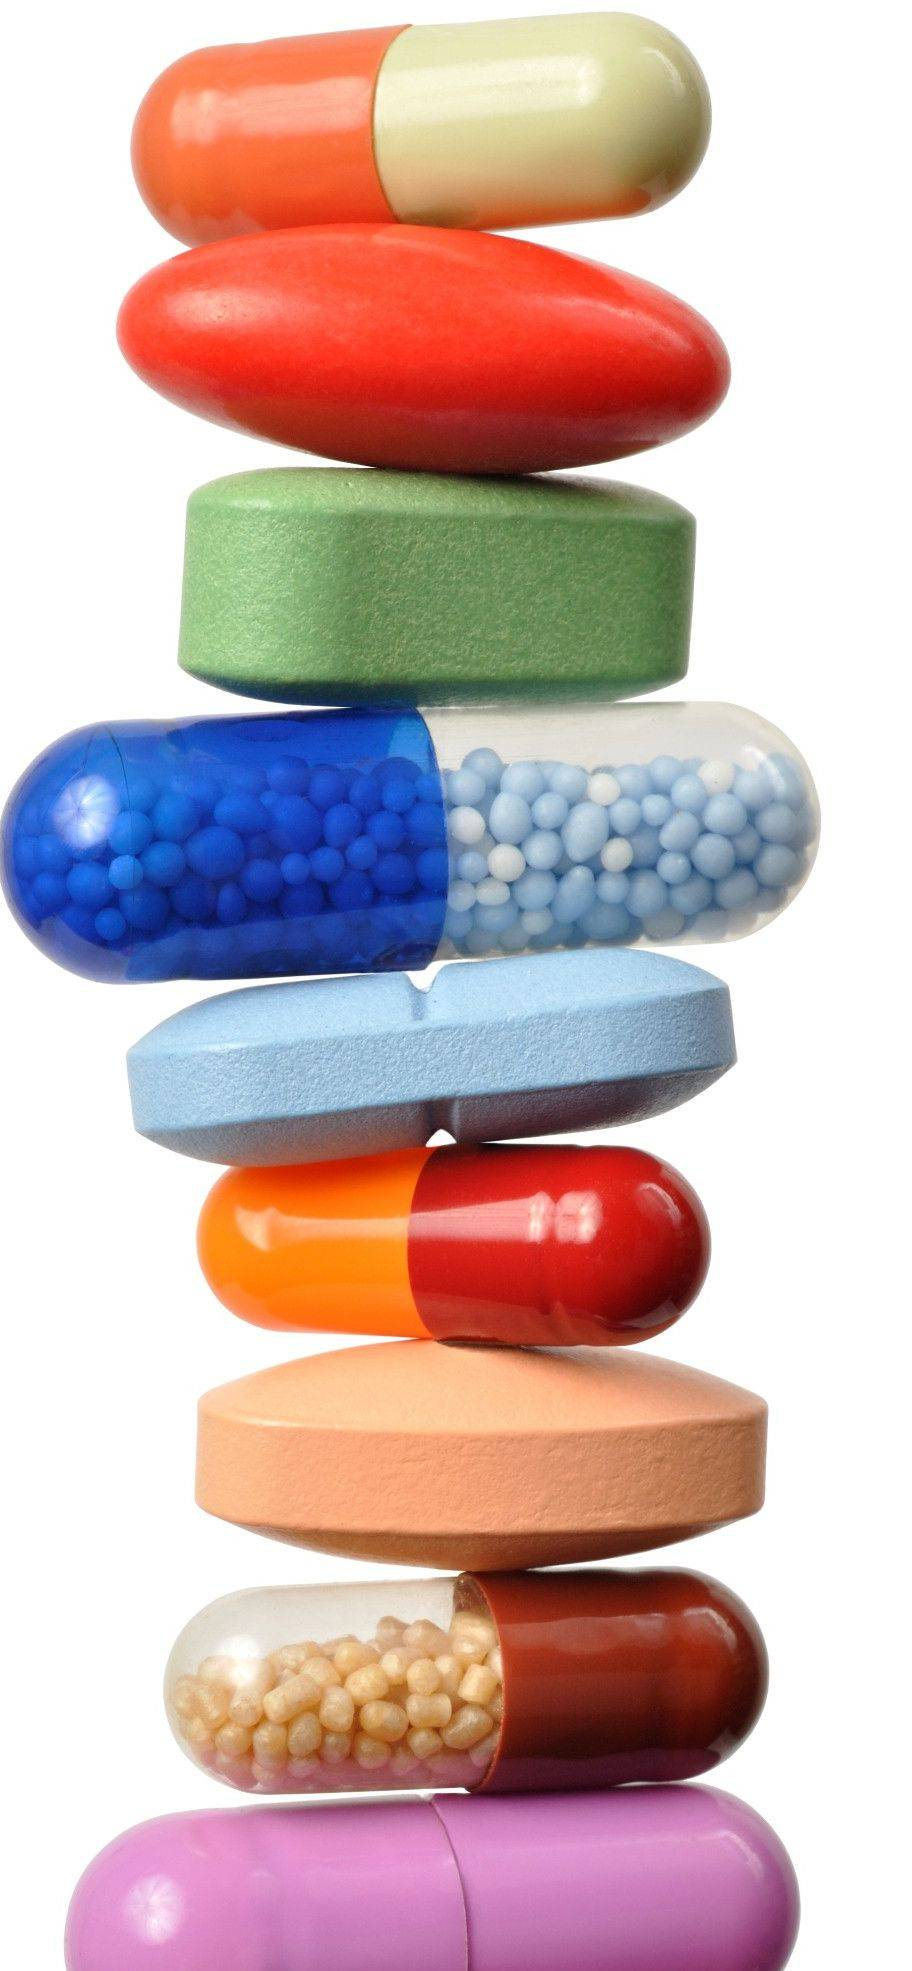 Taking too much over-the-counter pain medication can have serious side effects.